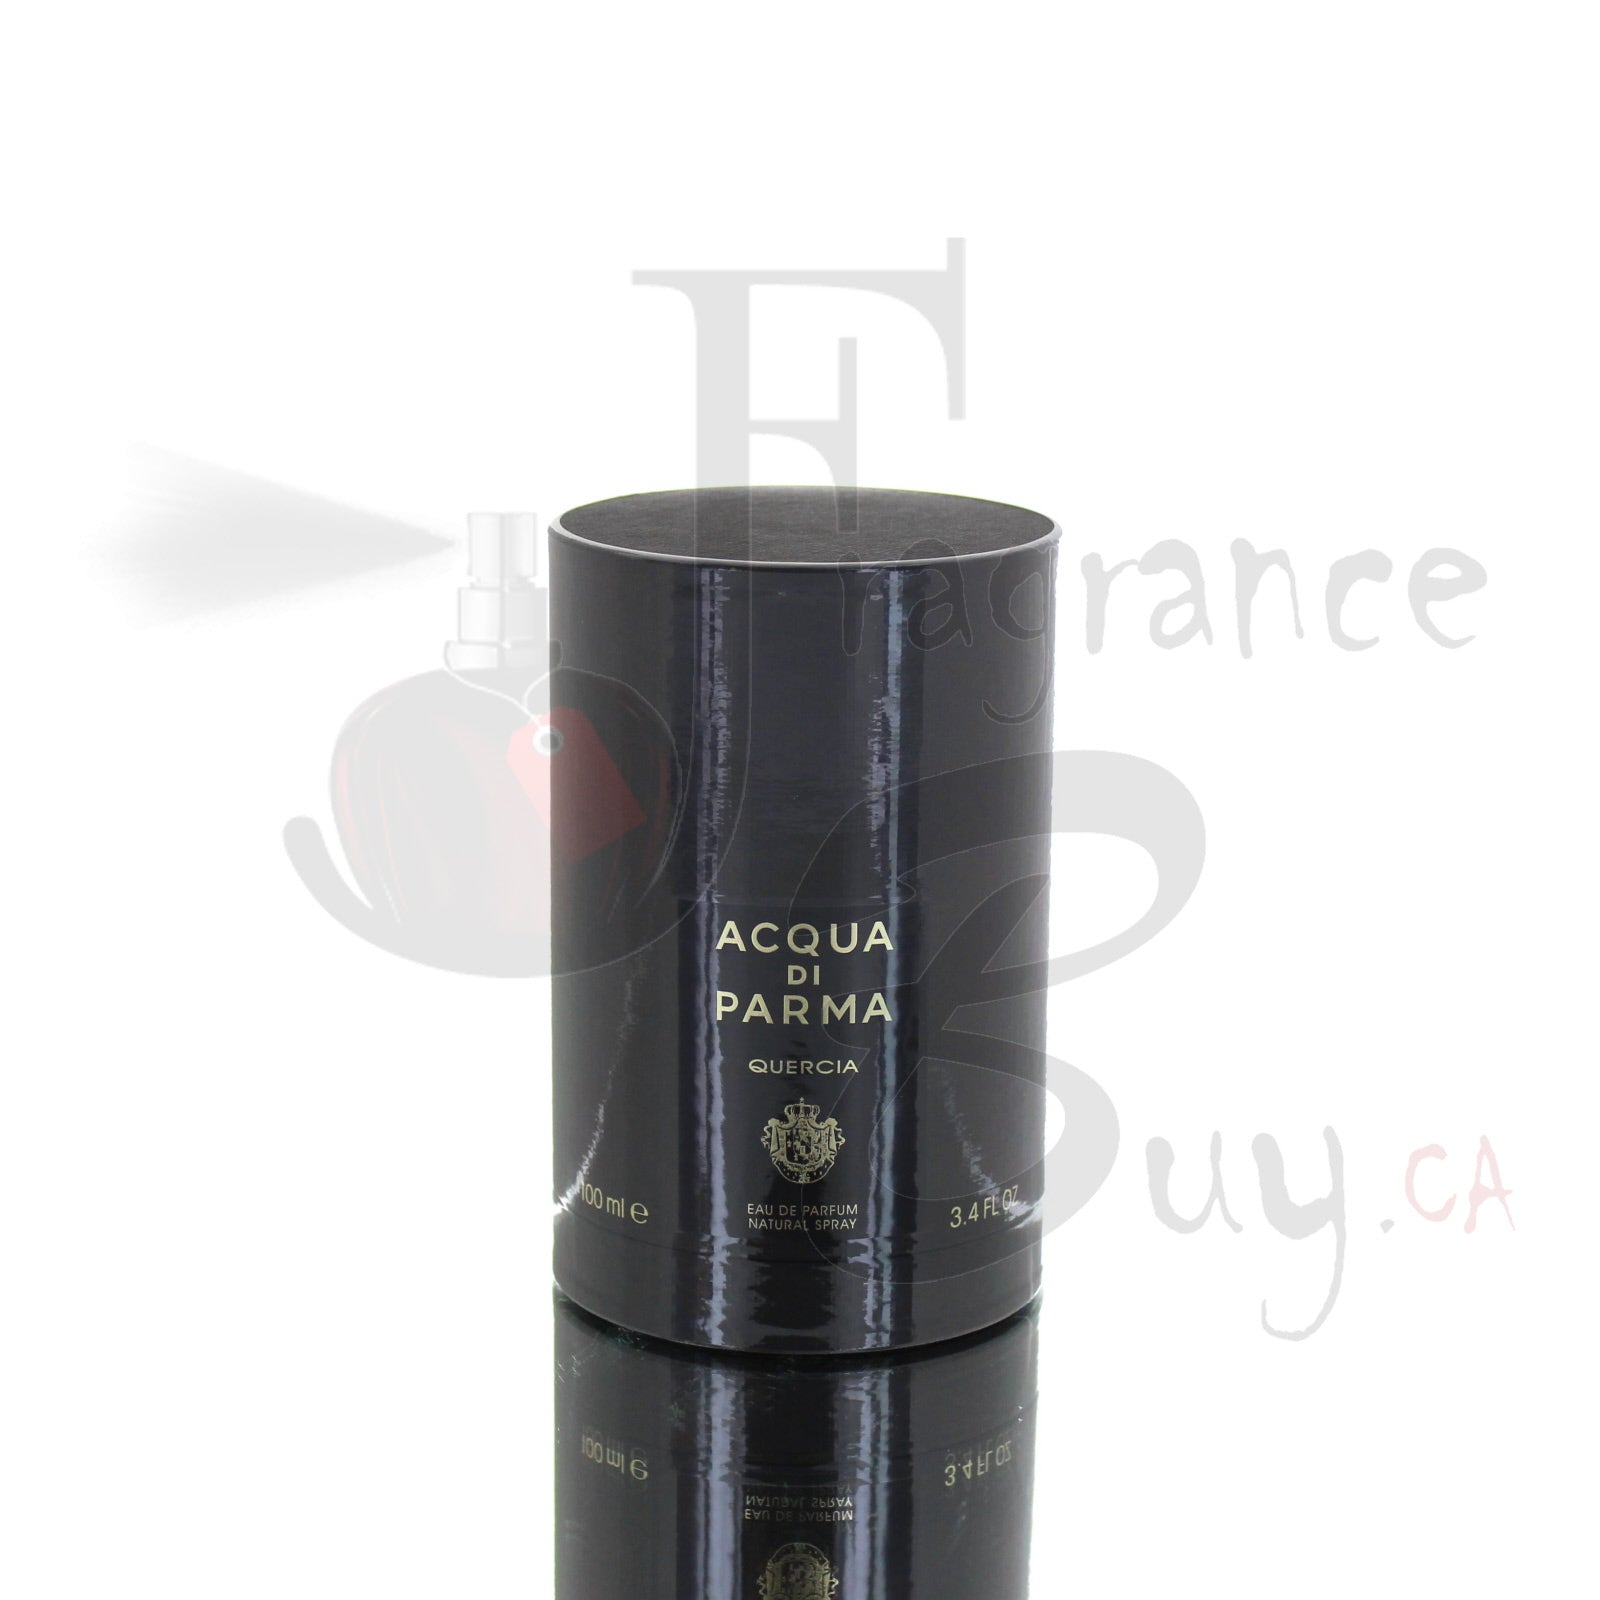 Acqua Di Parma Colonia Quercia Concentree For Man